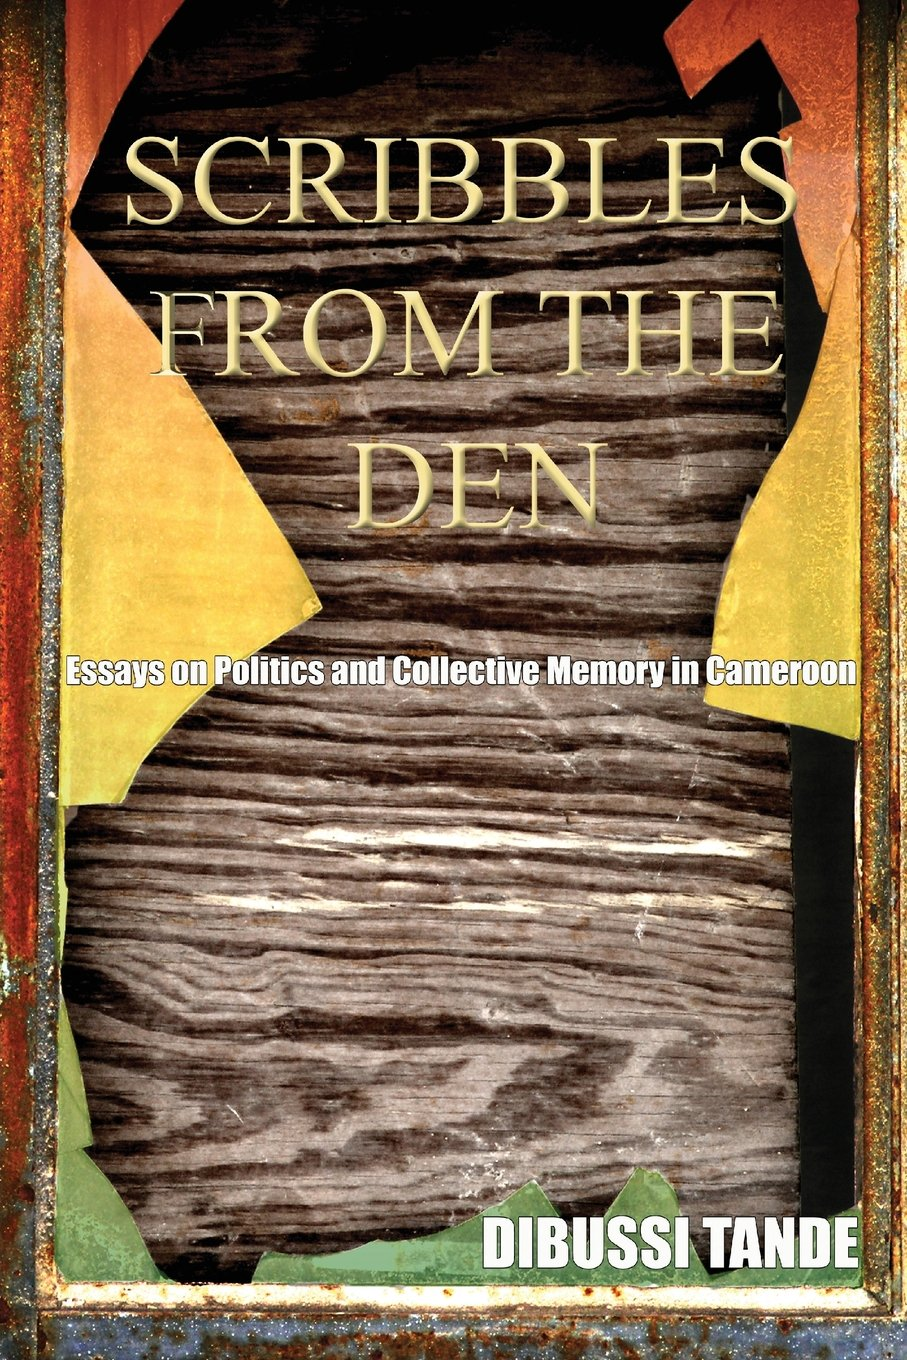 scribbles from the den essays on politics and collective memory essays on politics and collective memory in dibussi tande 9789956558919 com books